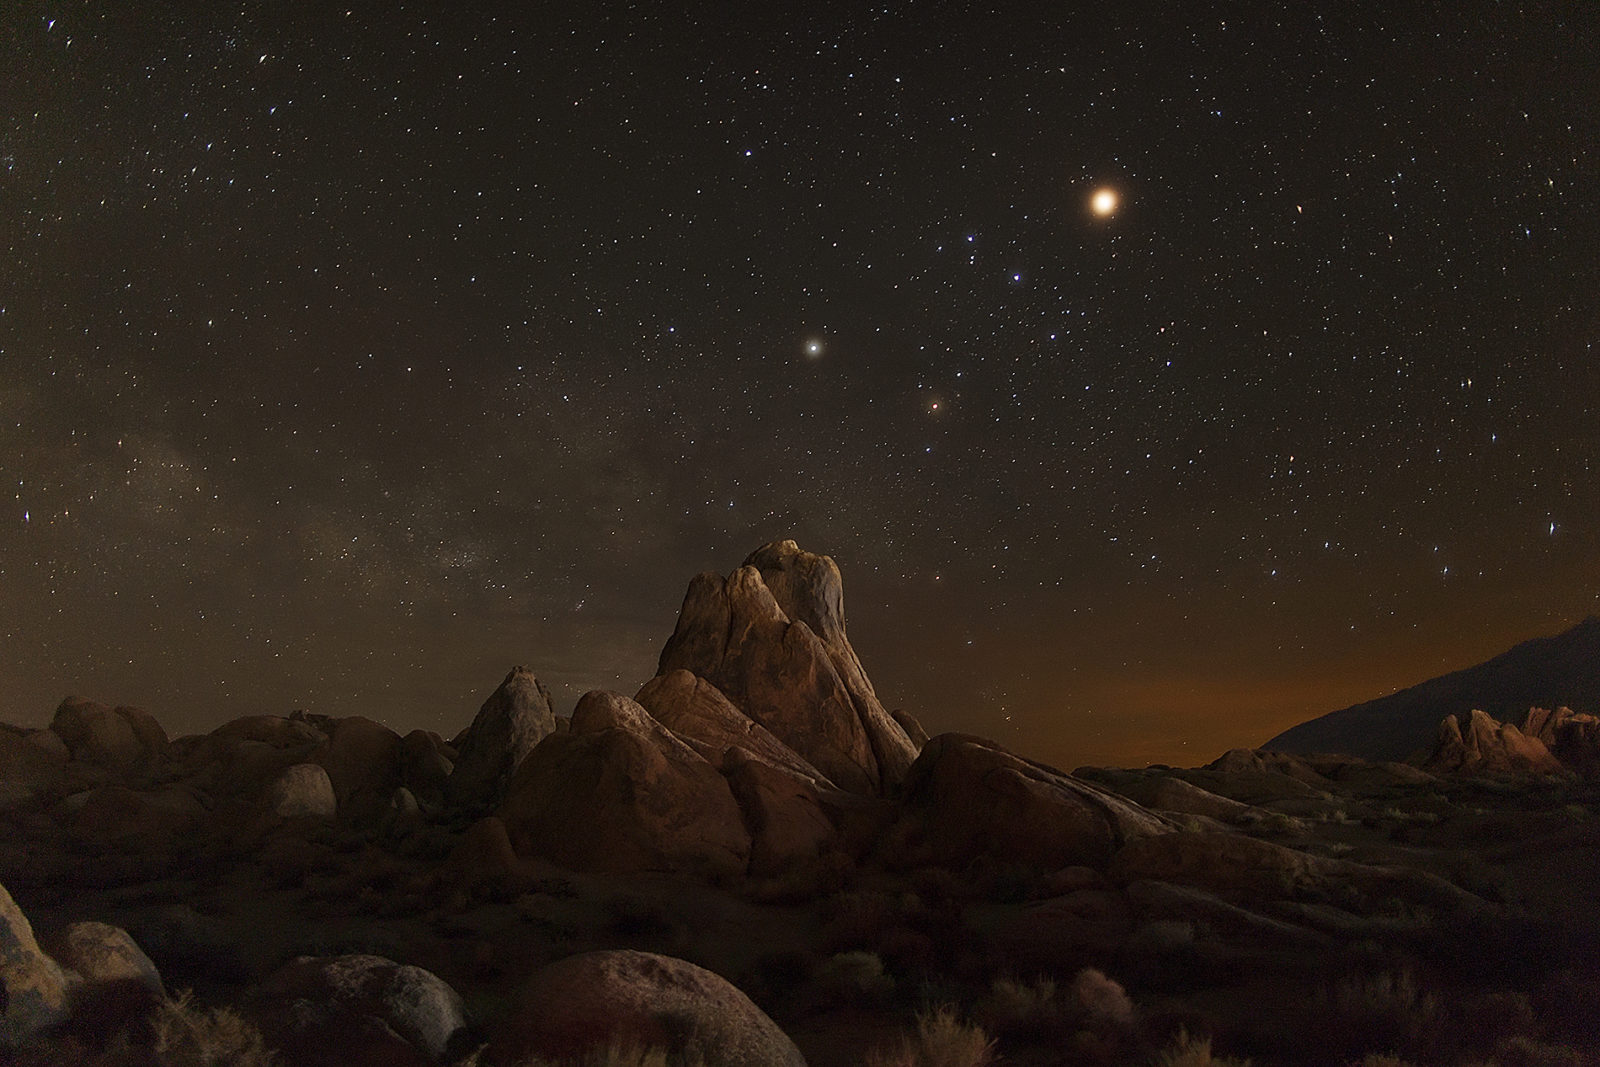 Mar, Saturn and the Milky Way